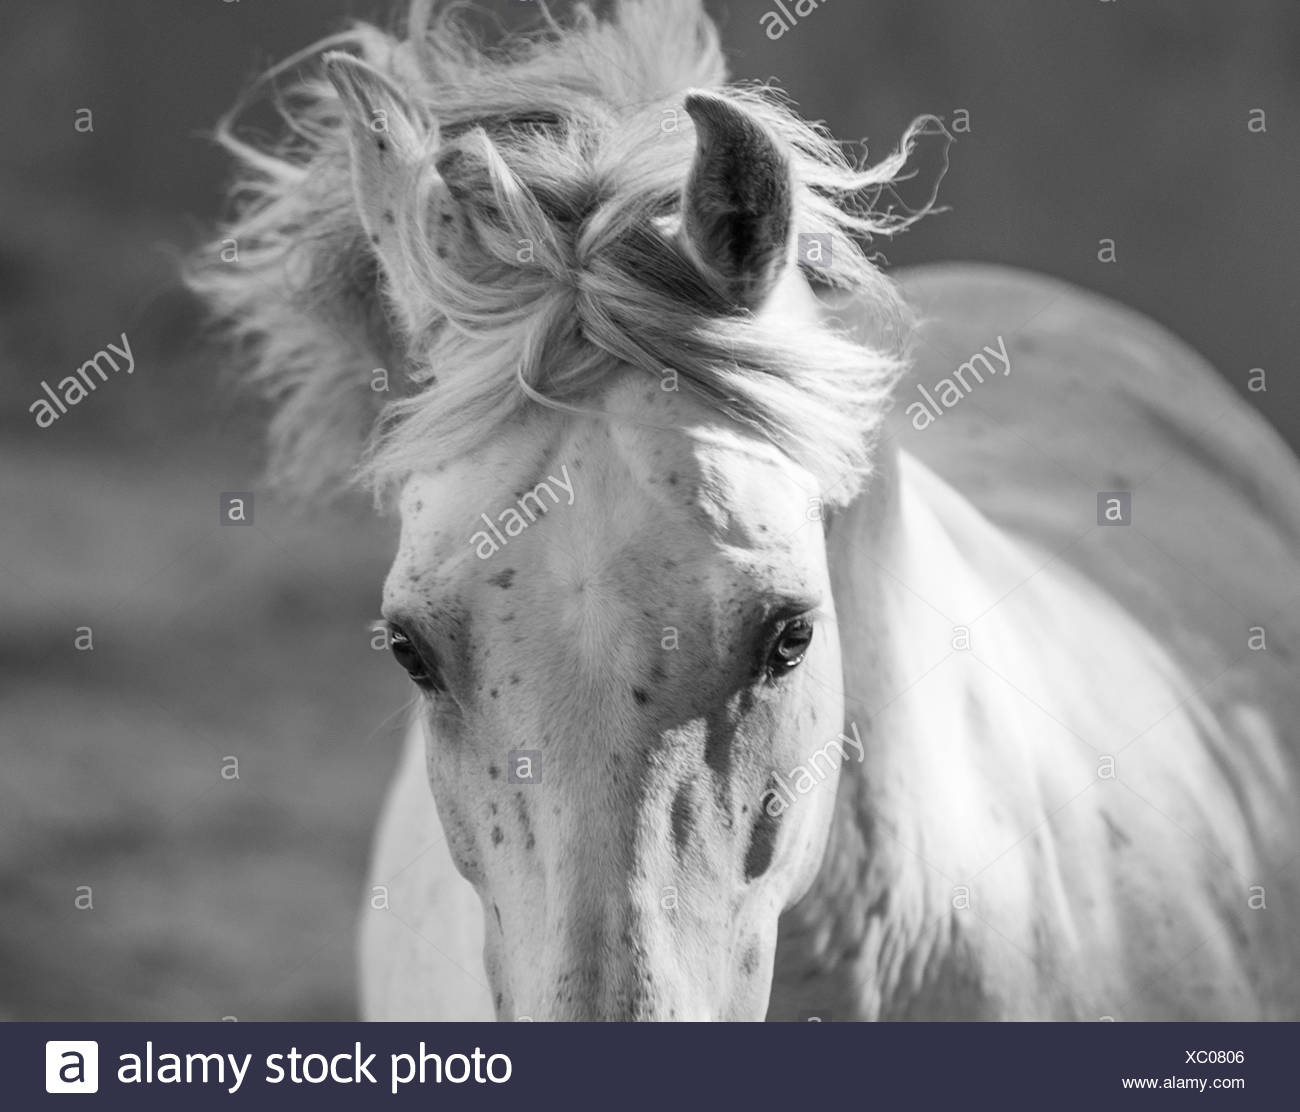 Head and mane of grey Andalusian stallion running in bullfighting arena, Southern Spain, Europe. - Stock Image